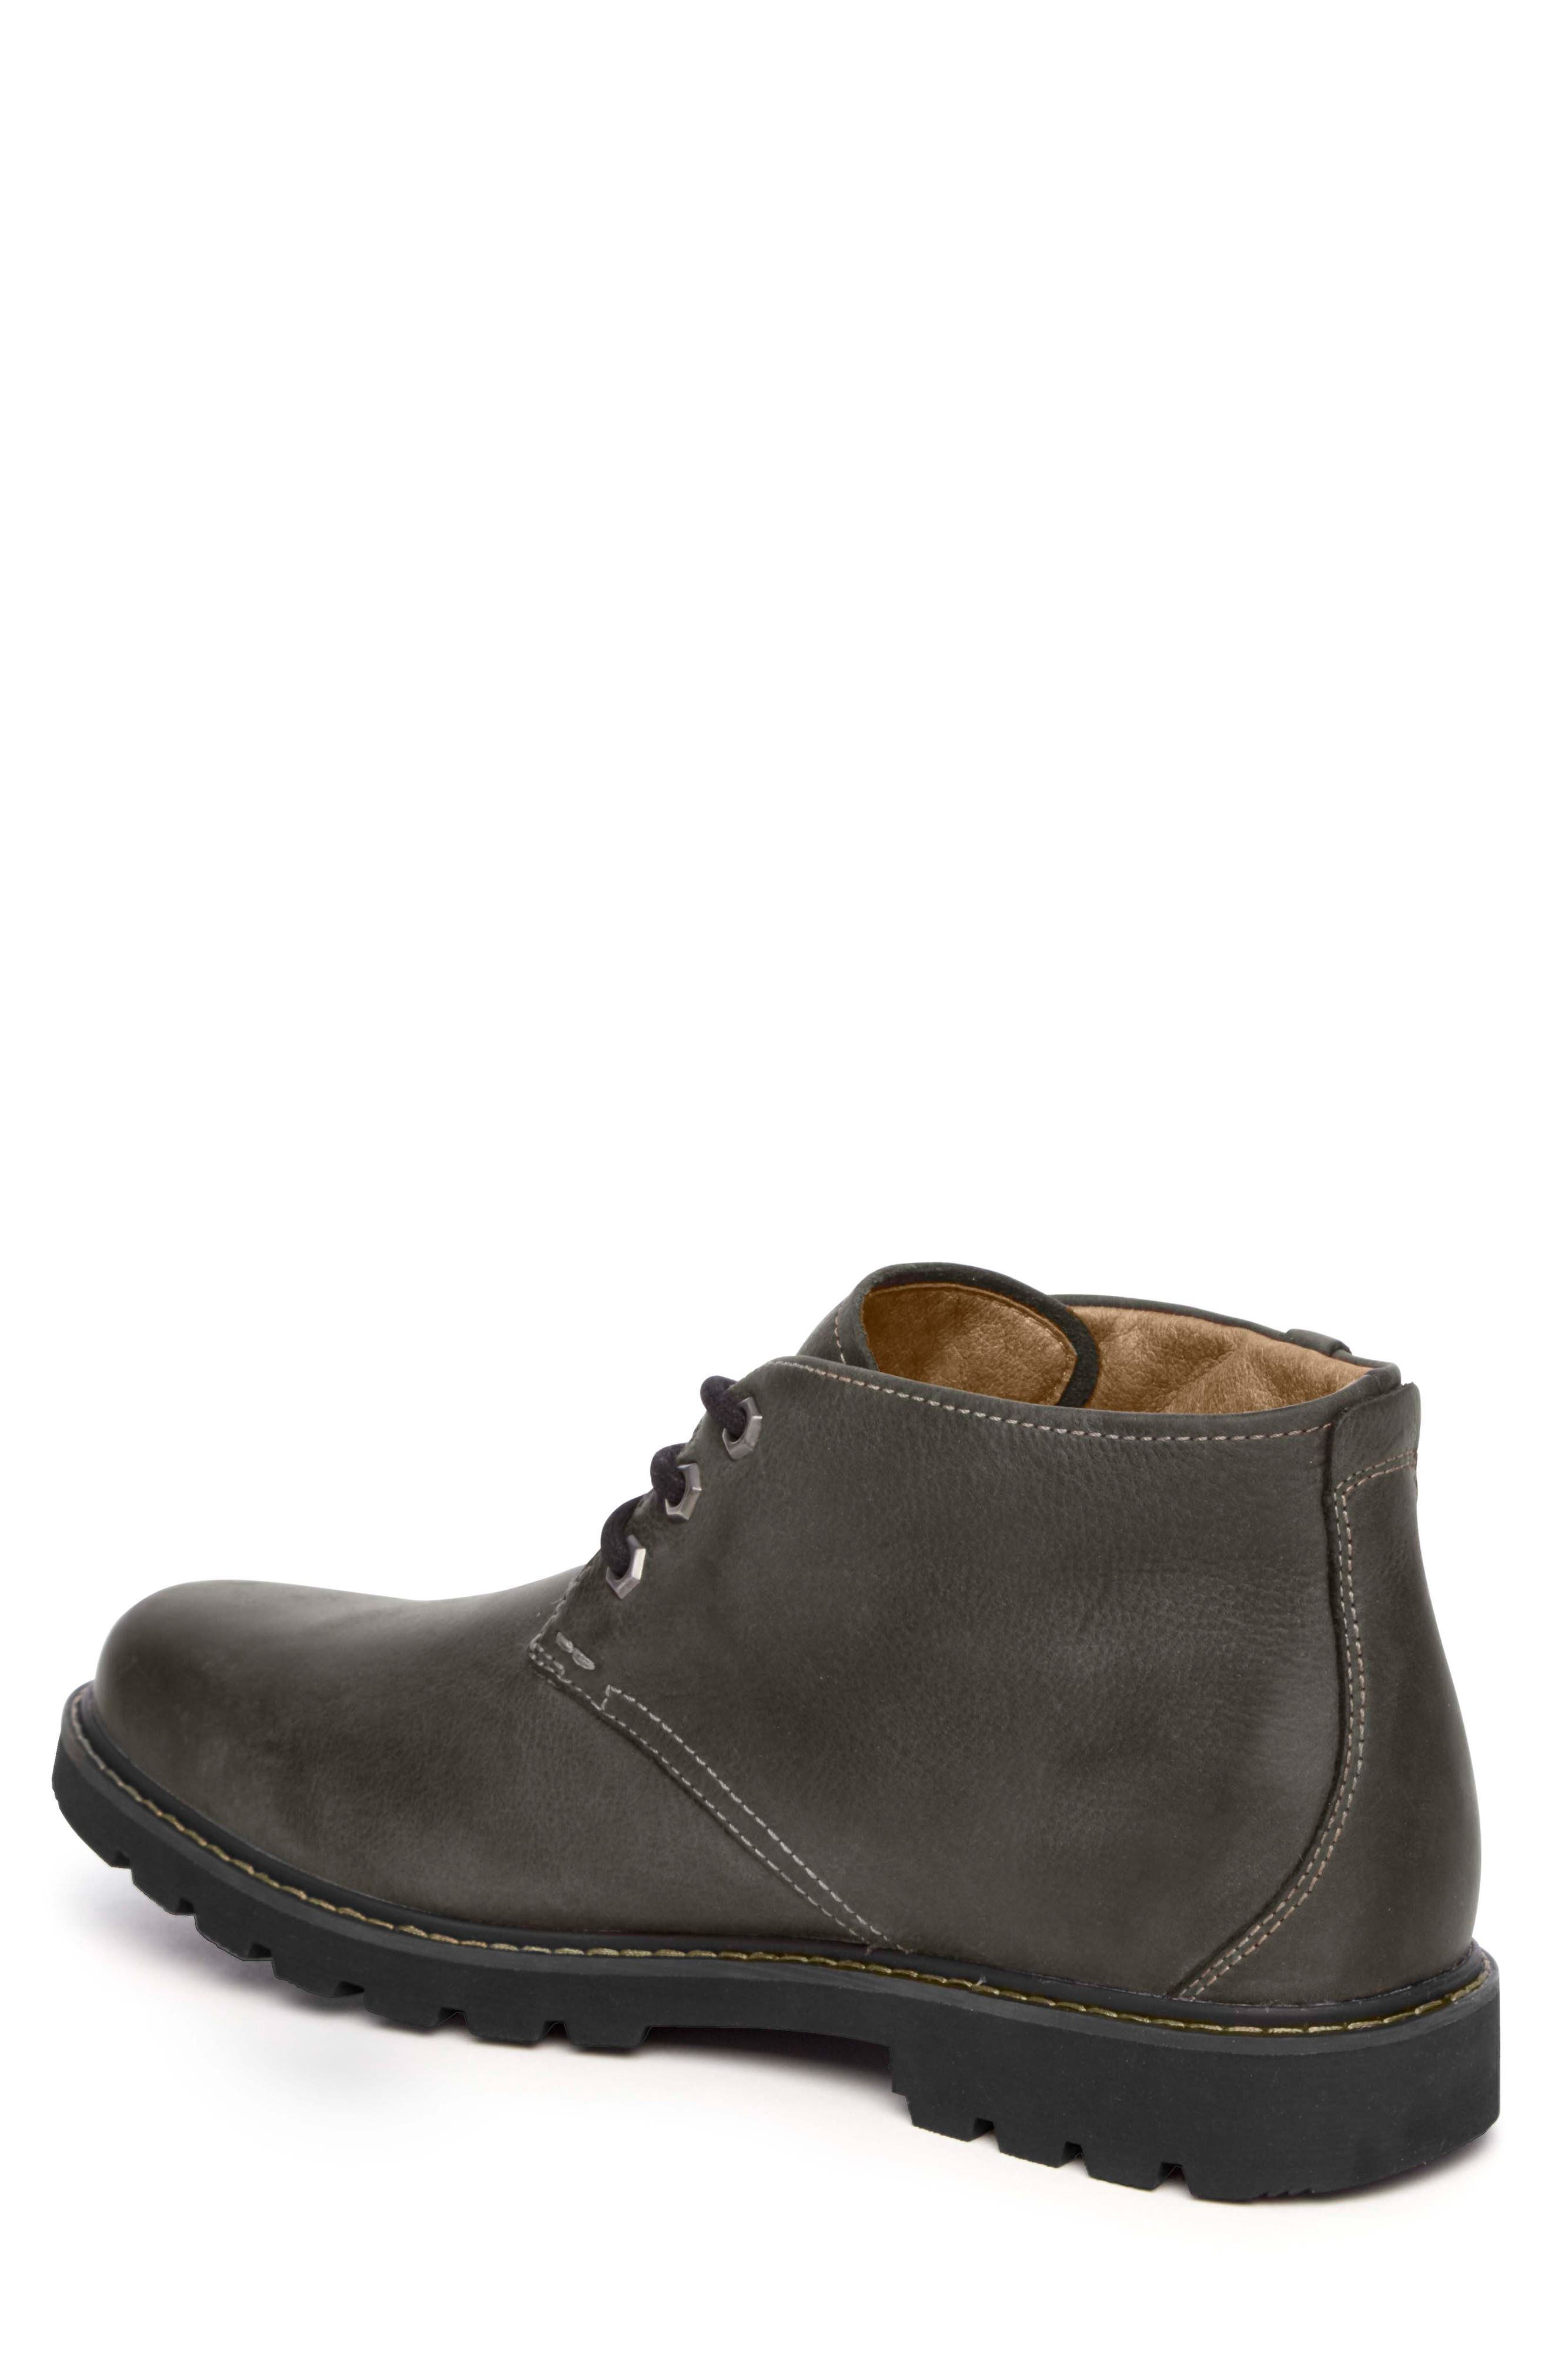 DUNHAM, Royalton Chukka Boot, Alternate thumbnail 2, color, FLAGSTONE LEATHER